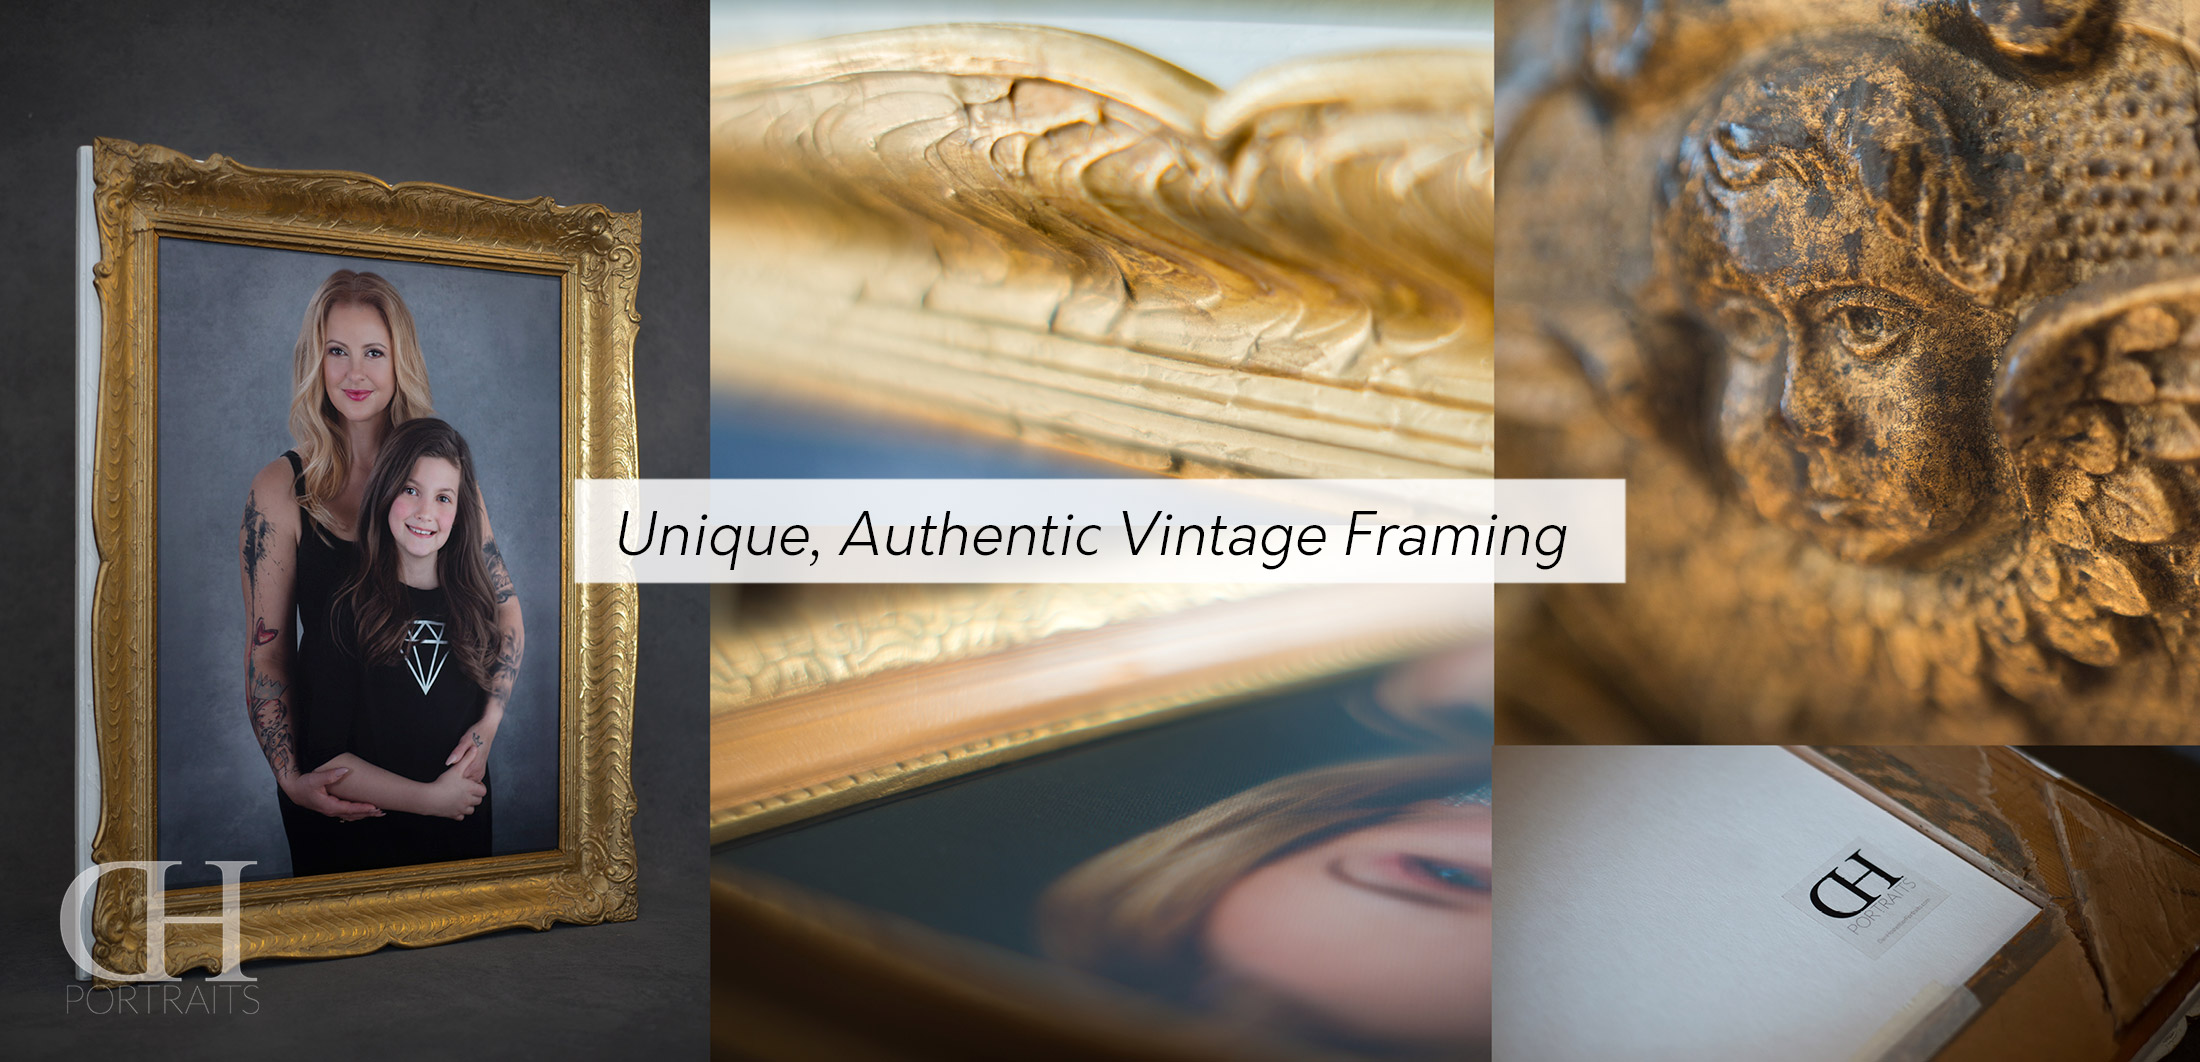 Unique Authentic Vintage Framing - Exclusive High Class Print Products - Dan Hostettler Portraits